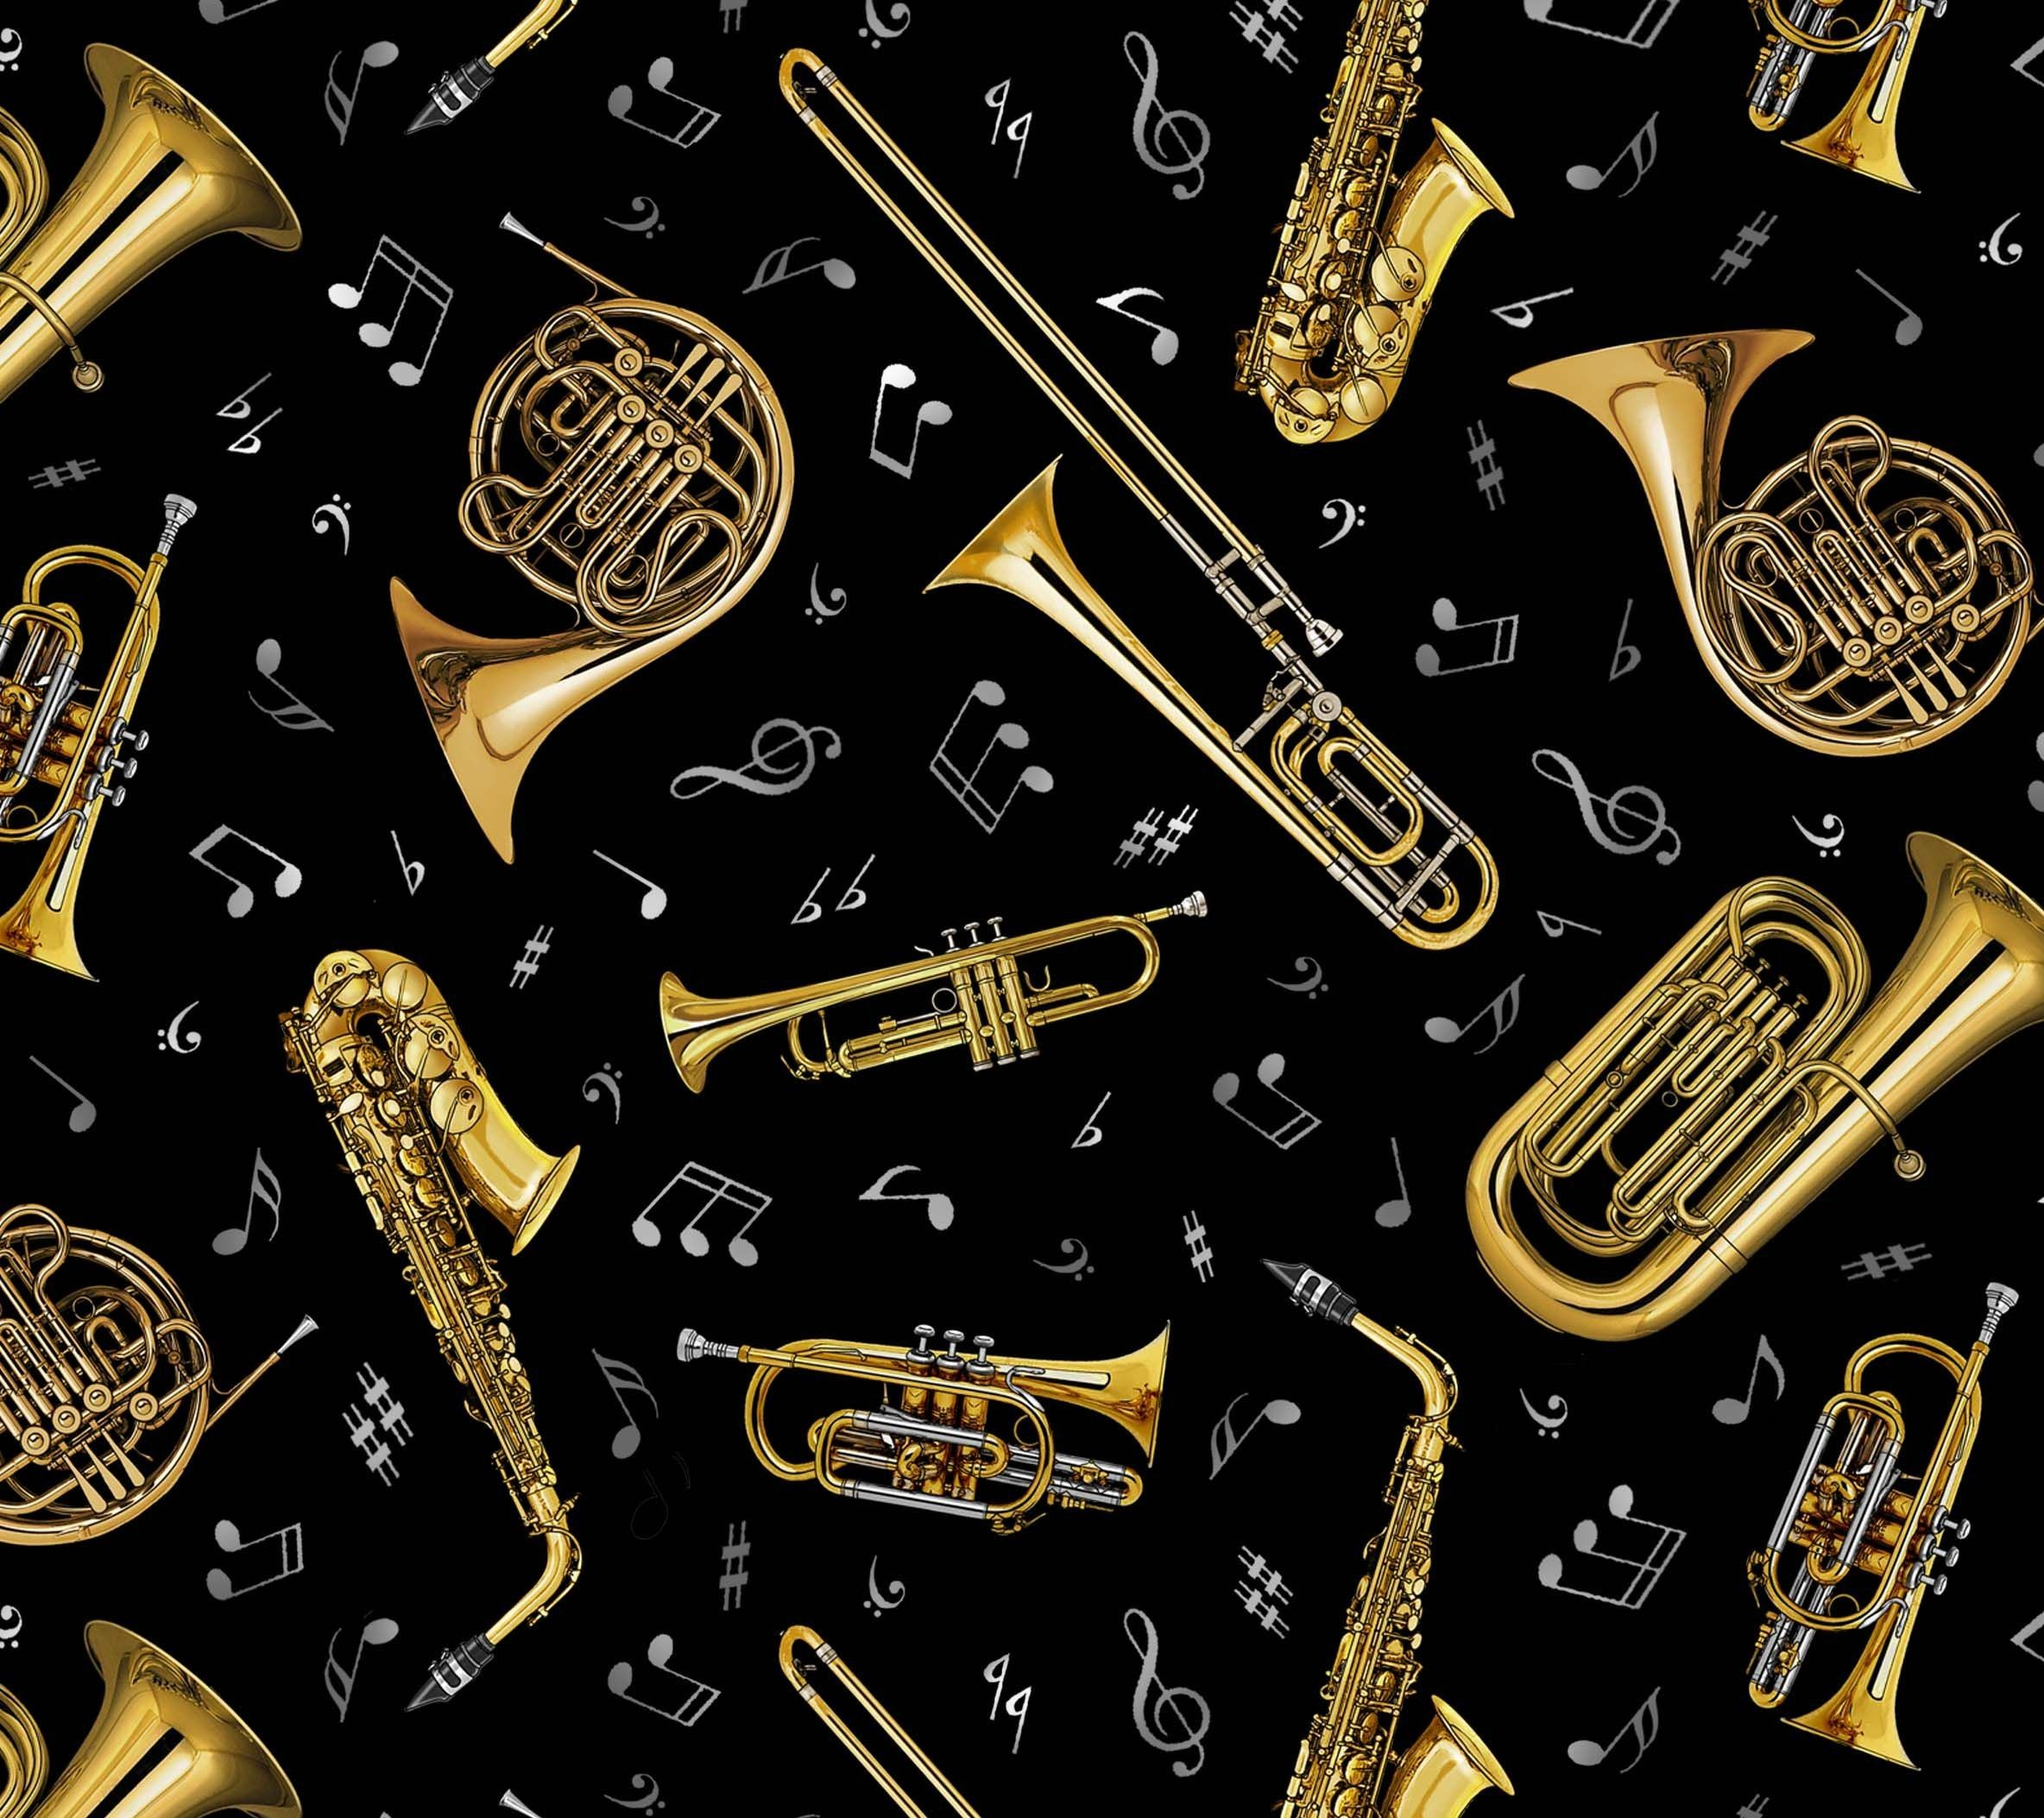 51 Hd Trombone Wallpapers On Wallpaperplay Trombone Novelty Fabric Music Notes